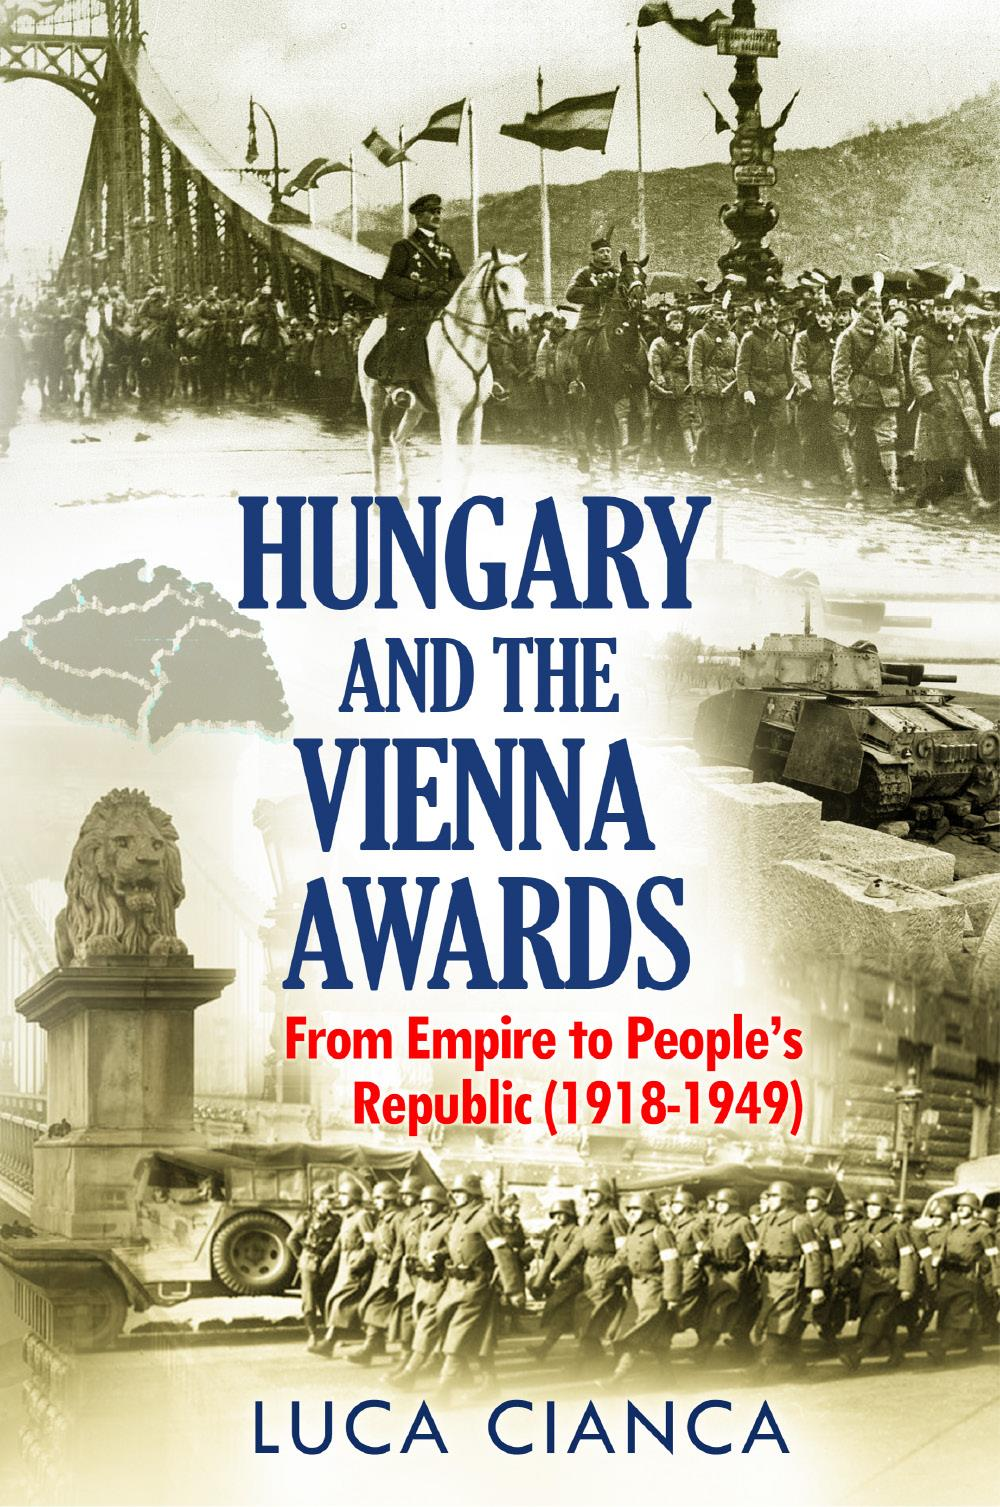 HUNGARY AND THE VIENNA AWARDS. From Empire to People's Republic (1918-1949)